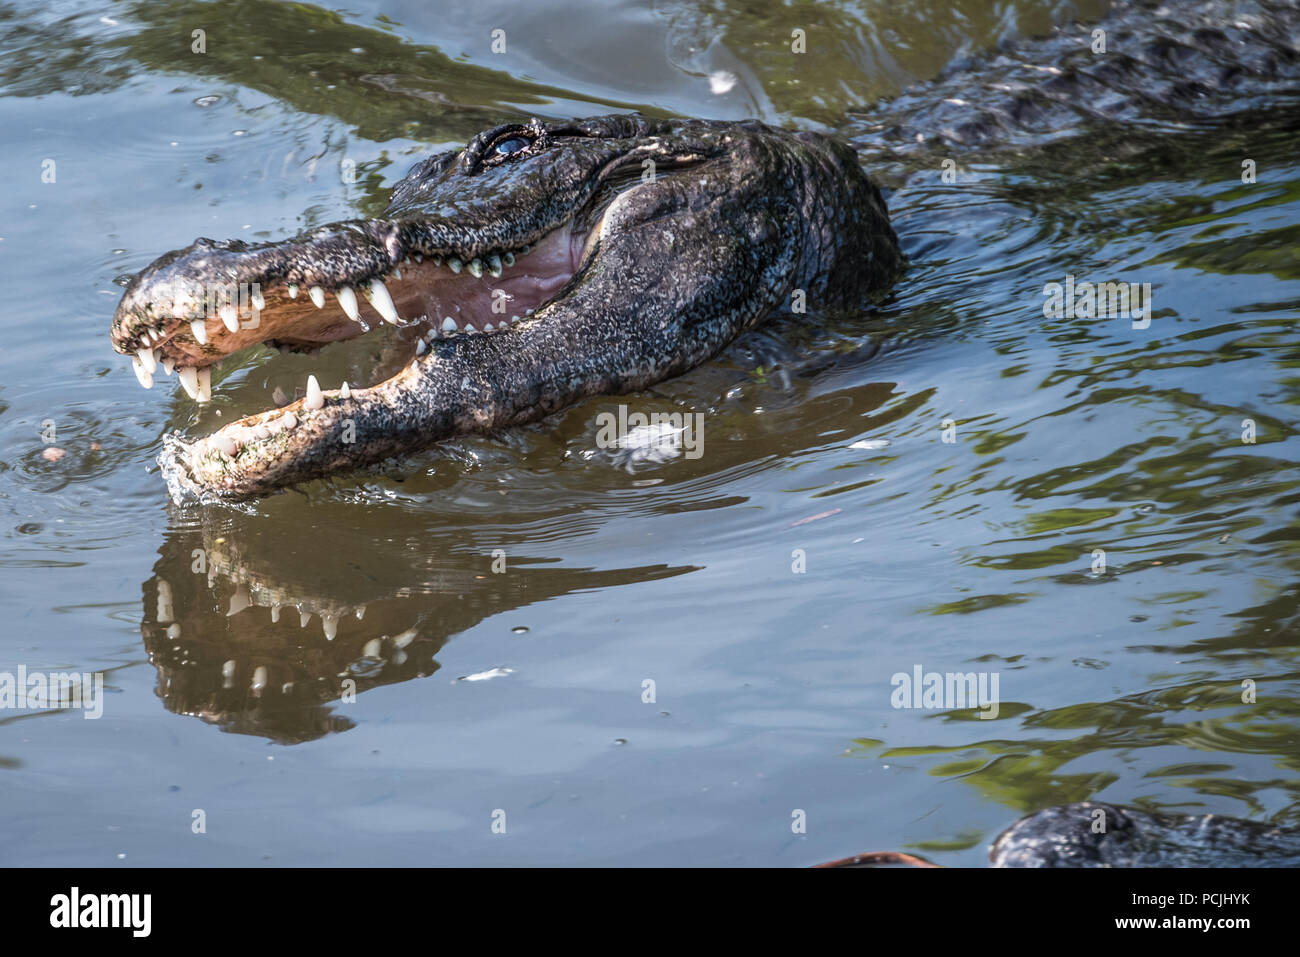 Hungry alligator with open mouth in St. Augustine, Florida. (USA) - Stock Image